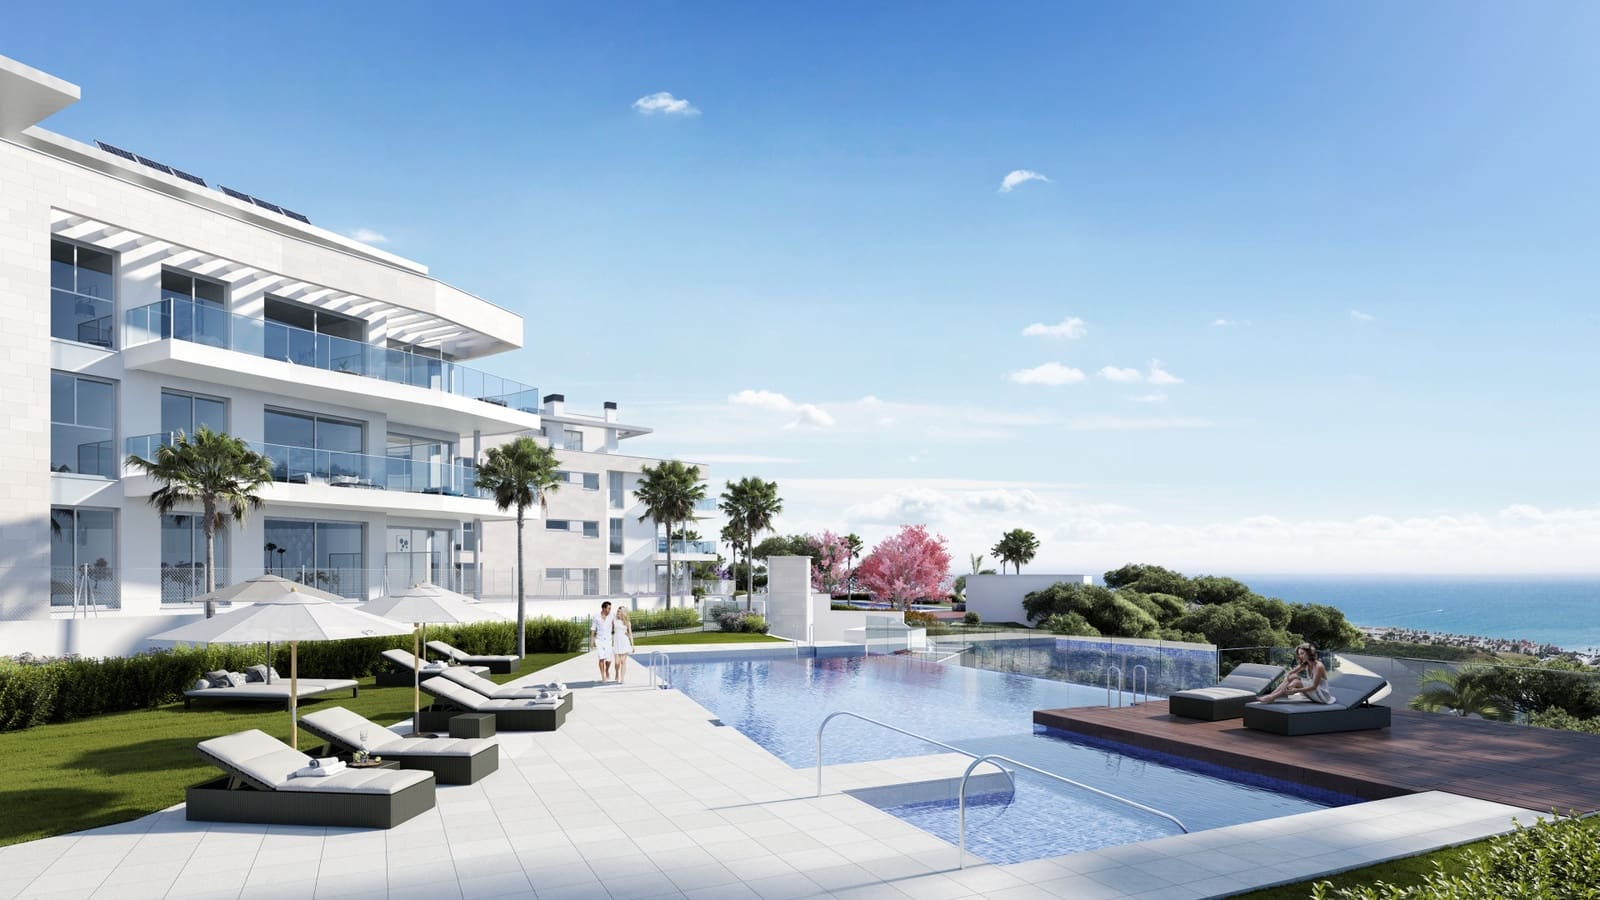 2 bedroom Apartment for sale in Mijas Costa with pool - € 253,000 (Ref: 5890203)